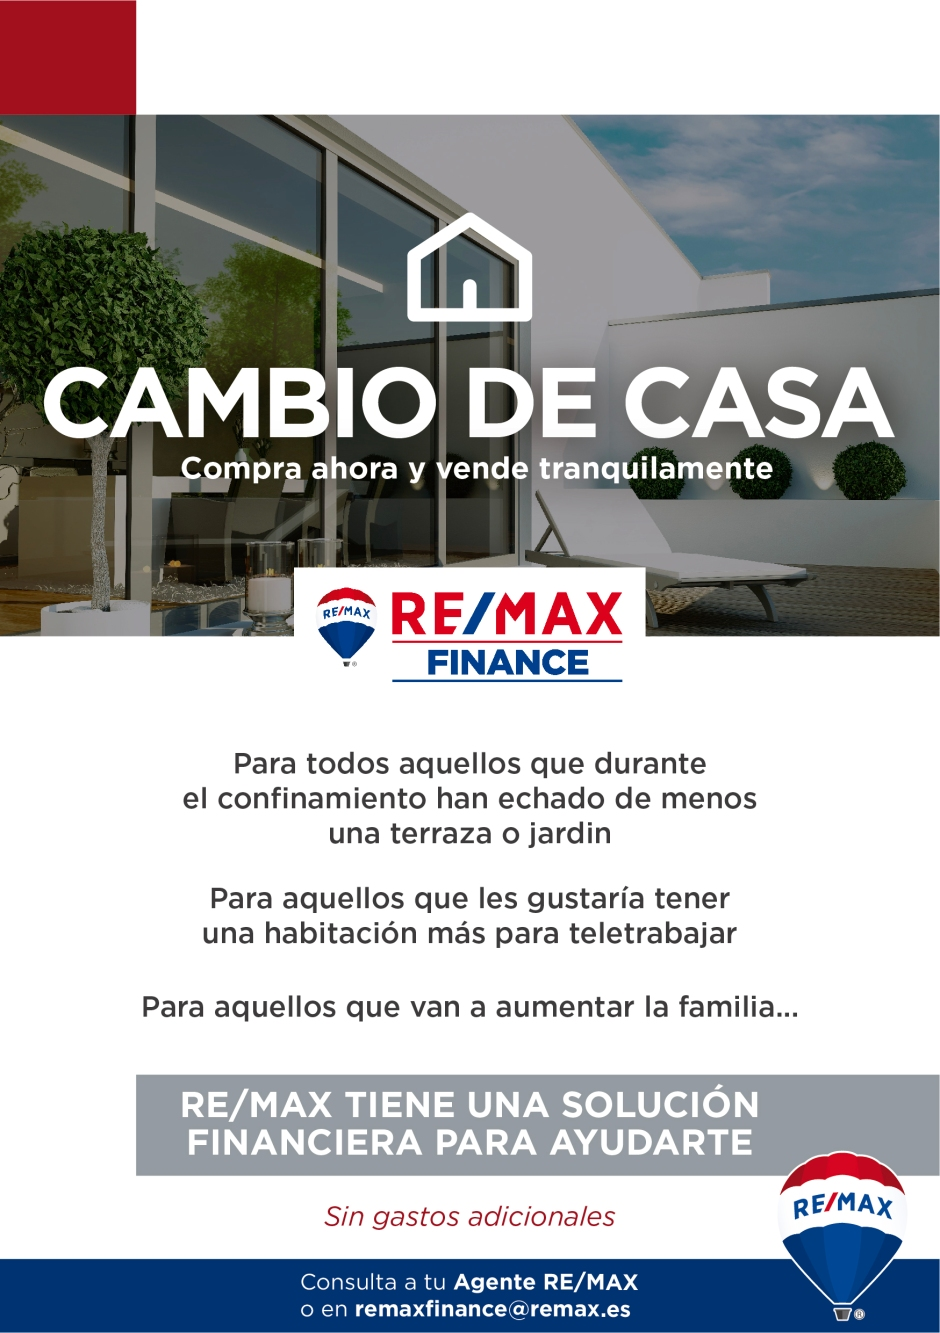 flyer-cambio-de-casa-remax-finance